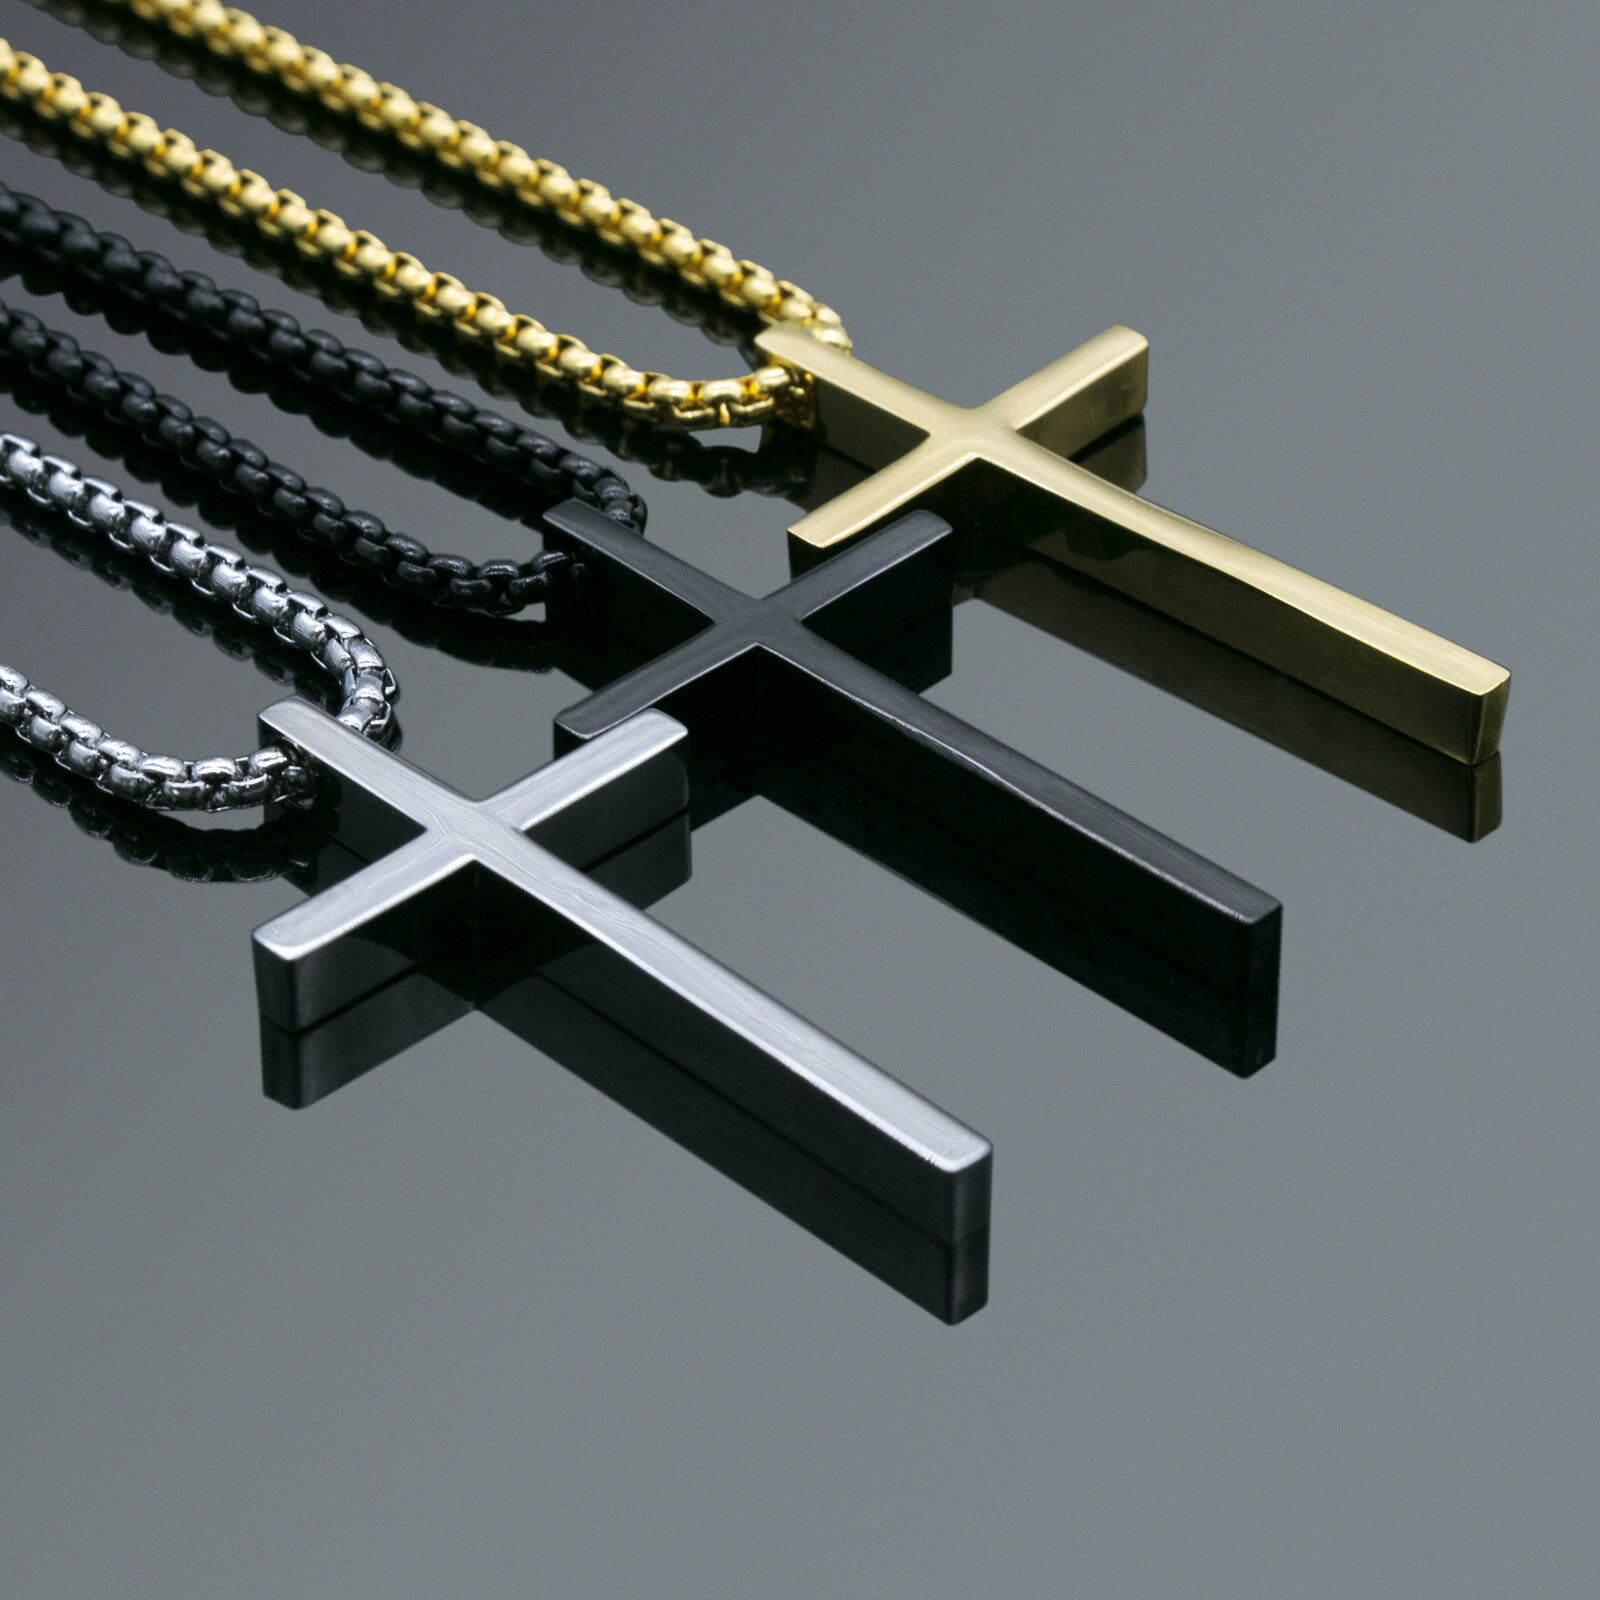 Jewellery - Men's Fashion Jewelry Plain Charm Gold Black Silver Cross Pendant Chain Necklace